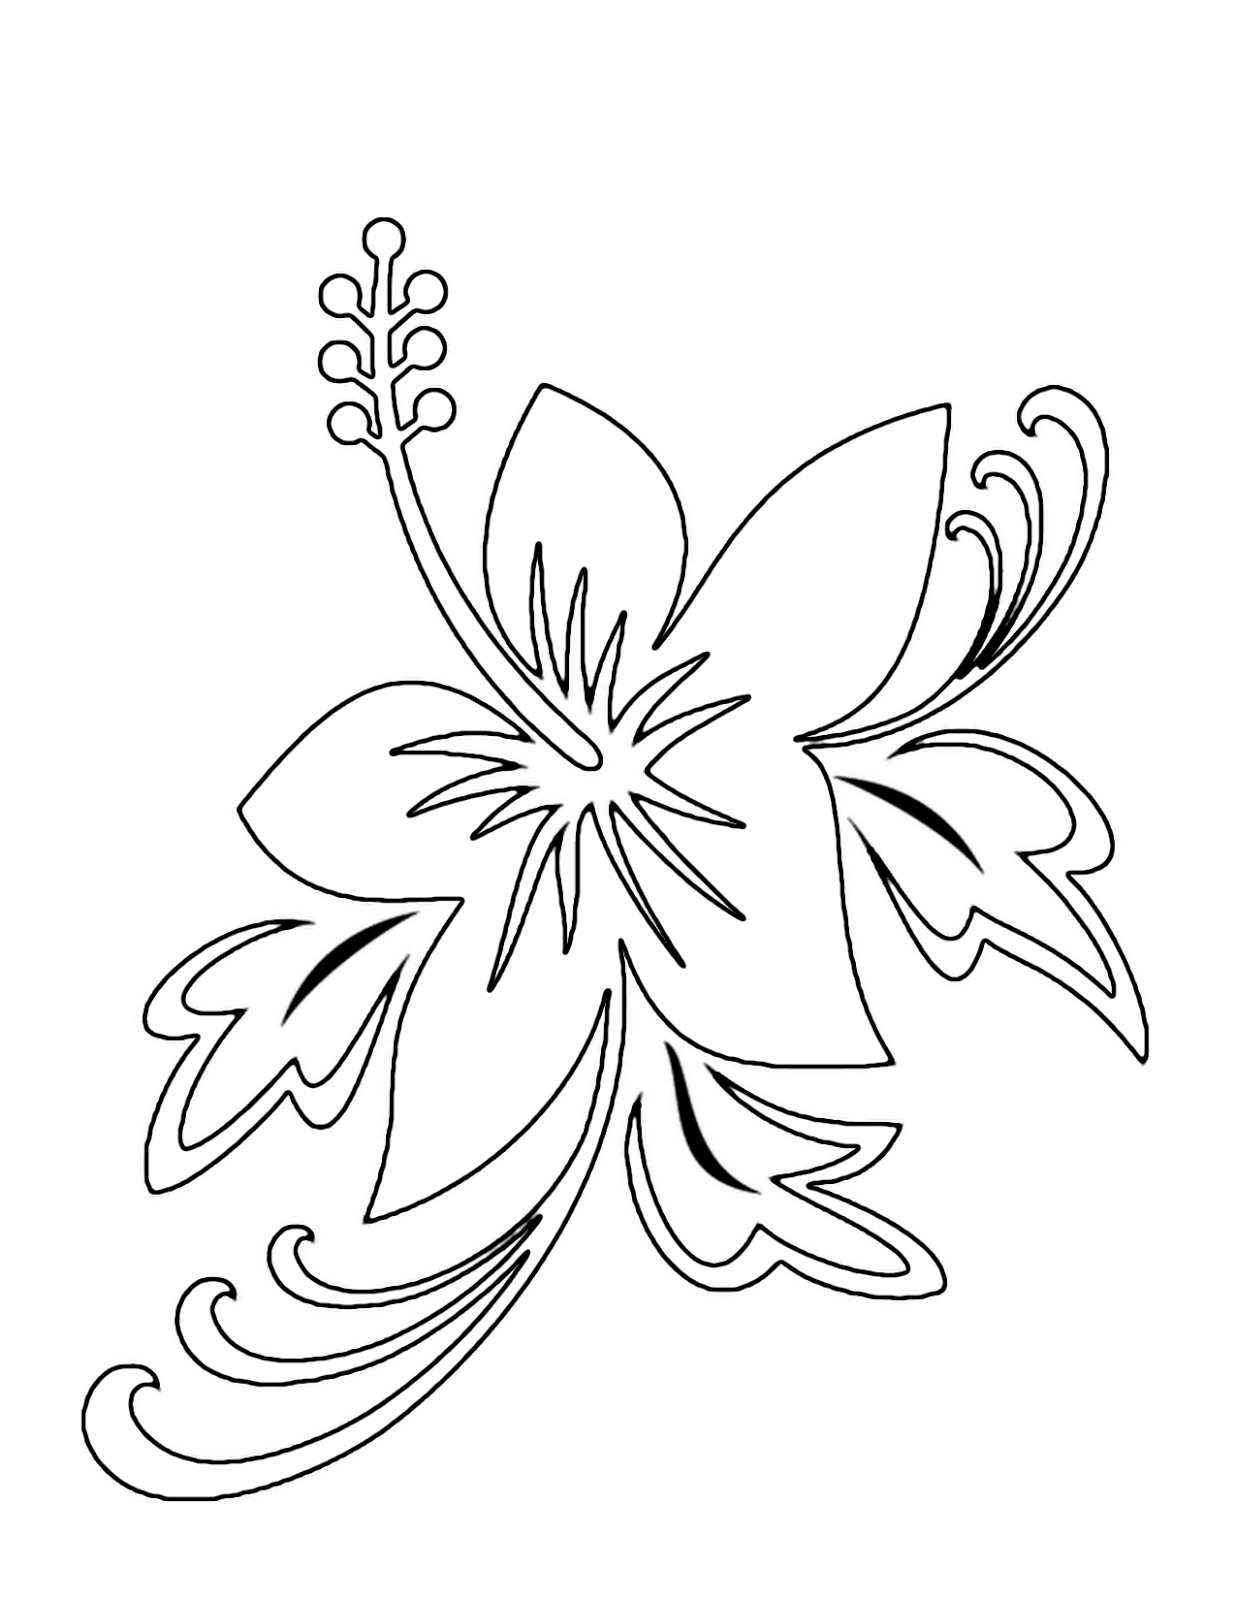 printable hawaiian flowers coloring pages - photo#9